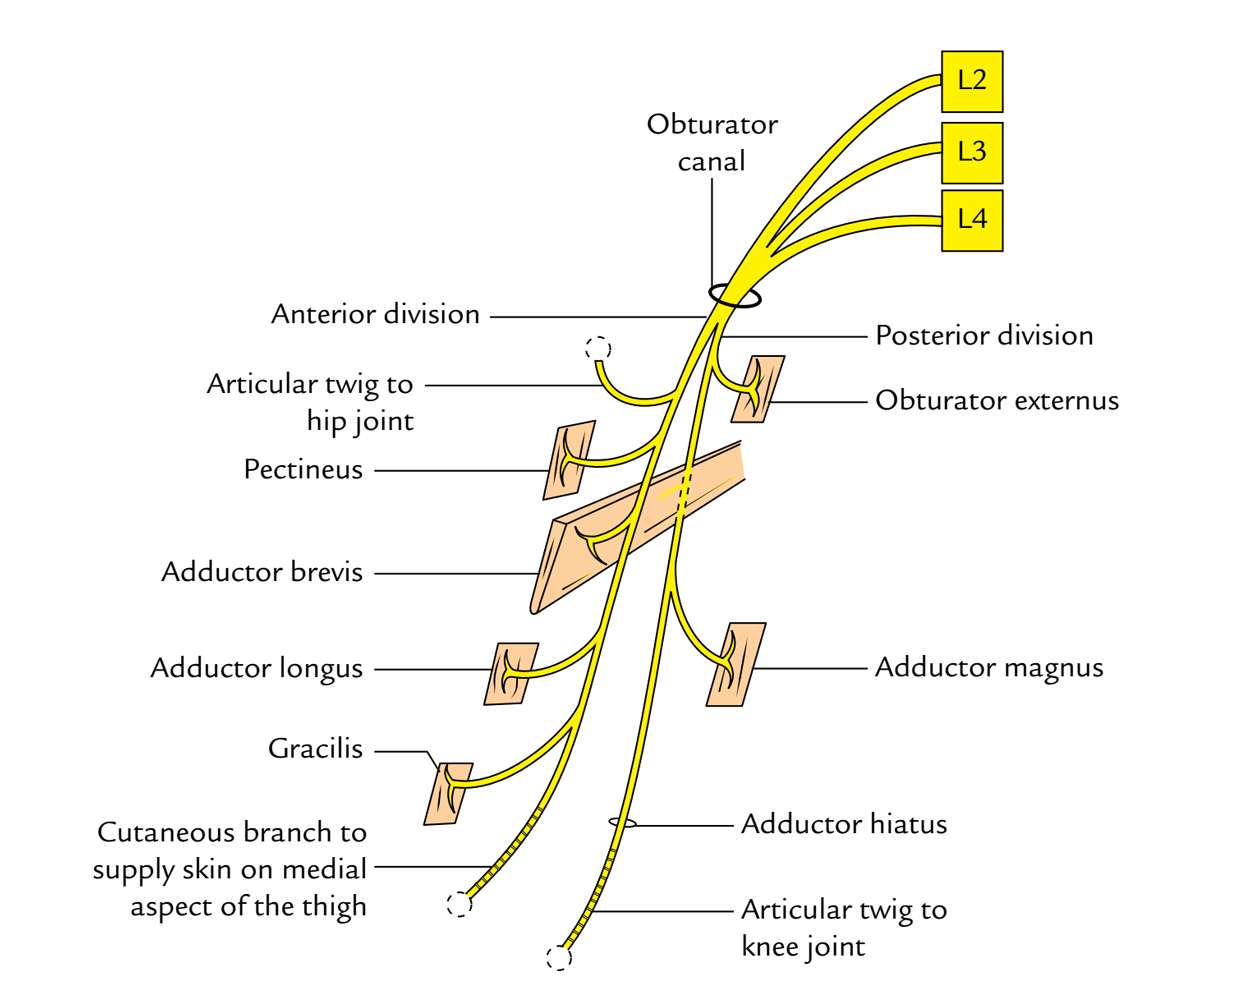 Obturator Nerve: Course and Distribution